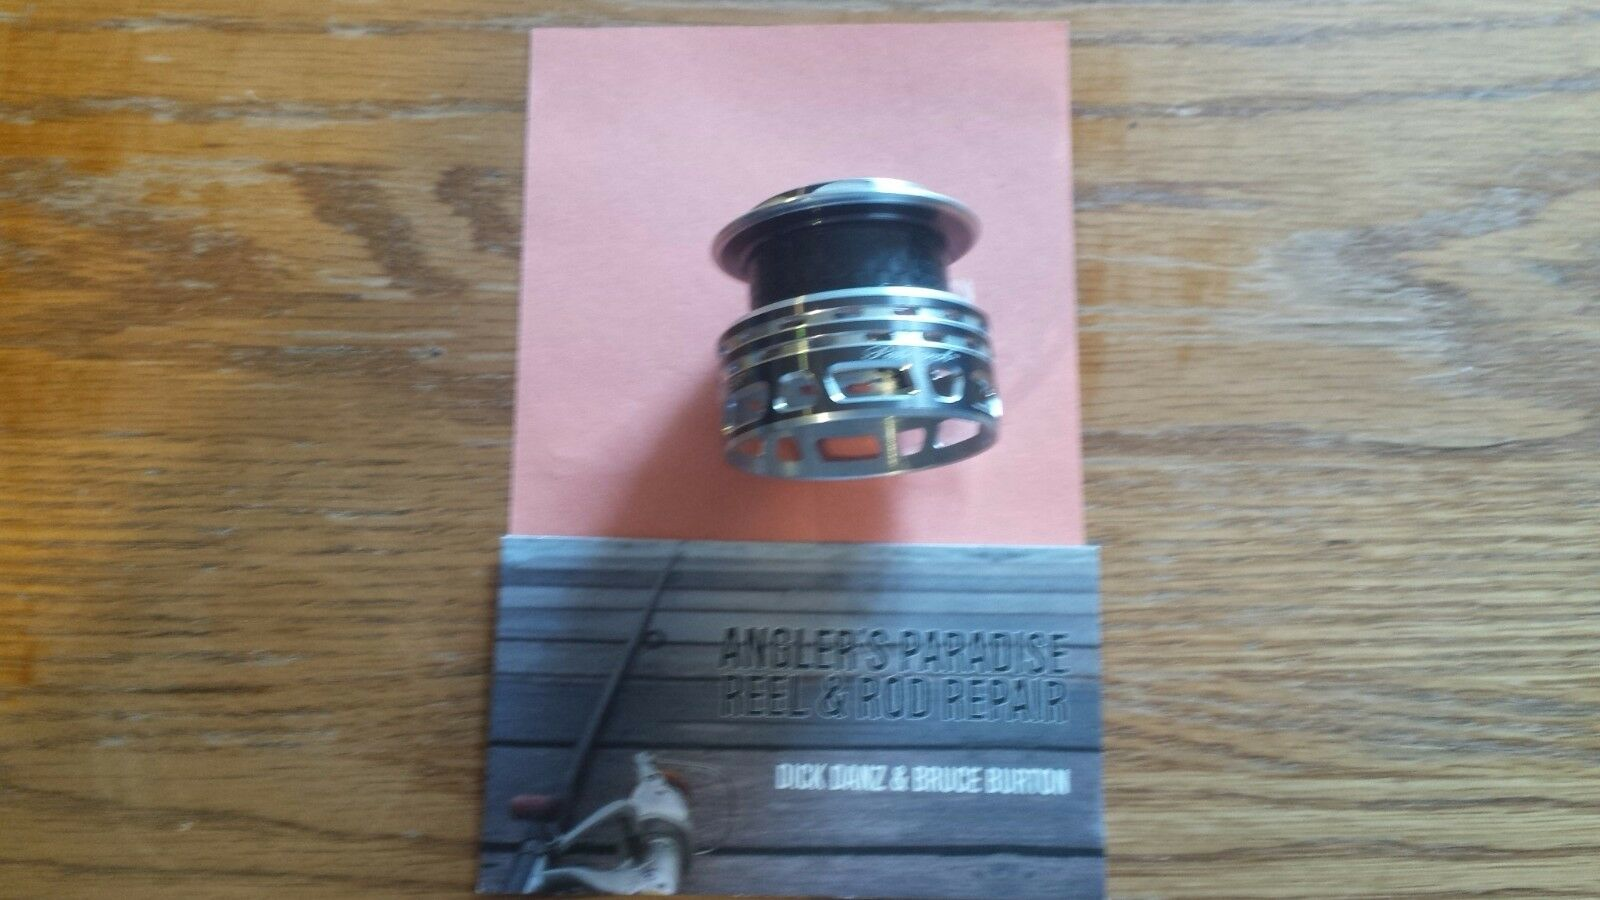 Pflueger reel repair parts (spool Patriarch  9525)  cheap and high quality